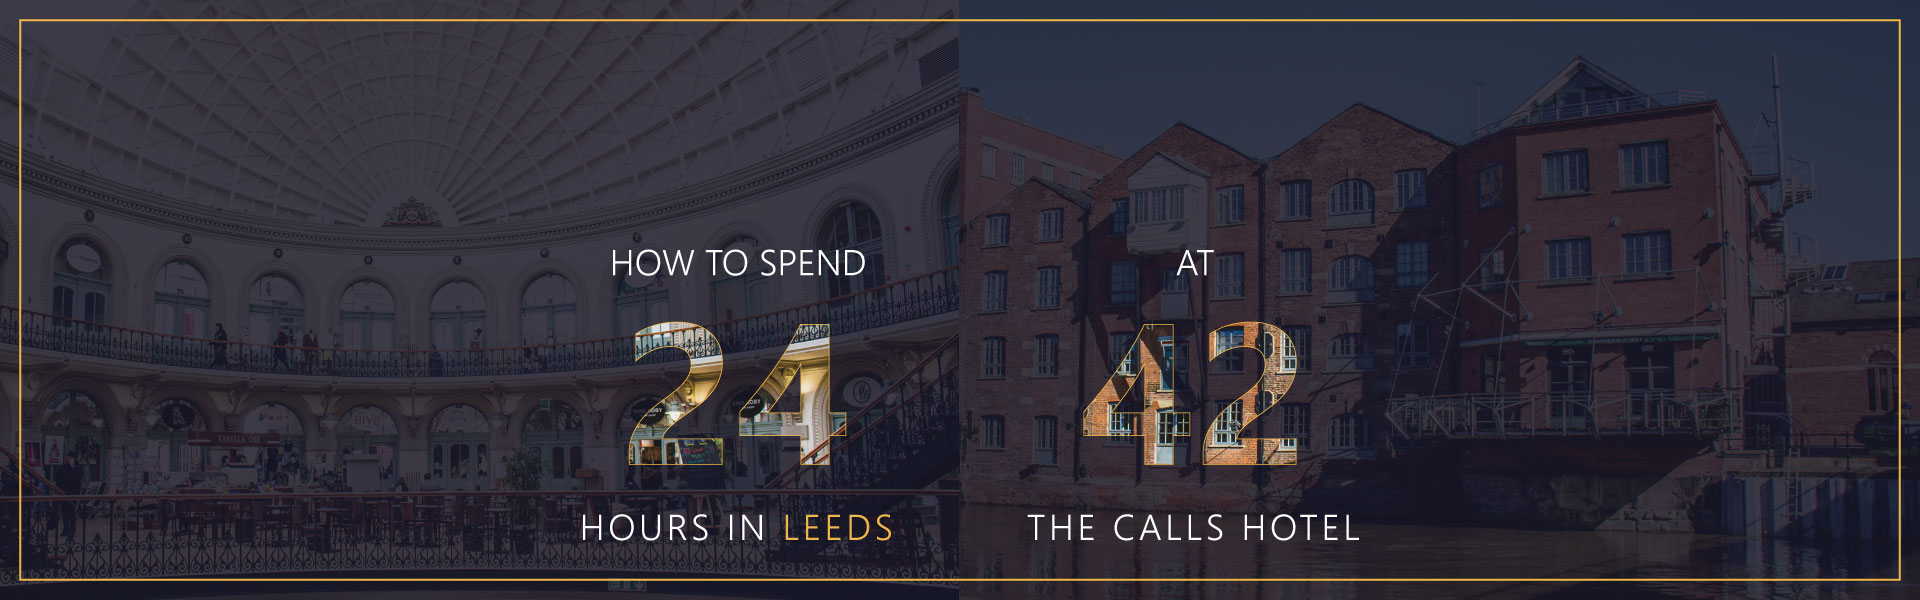 24 Hour Guide For Staying In Leeds At 42 The Calls Hotel | 4-Star Luxury, Boutique Suites on the River Aire